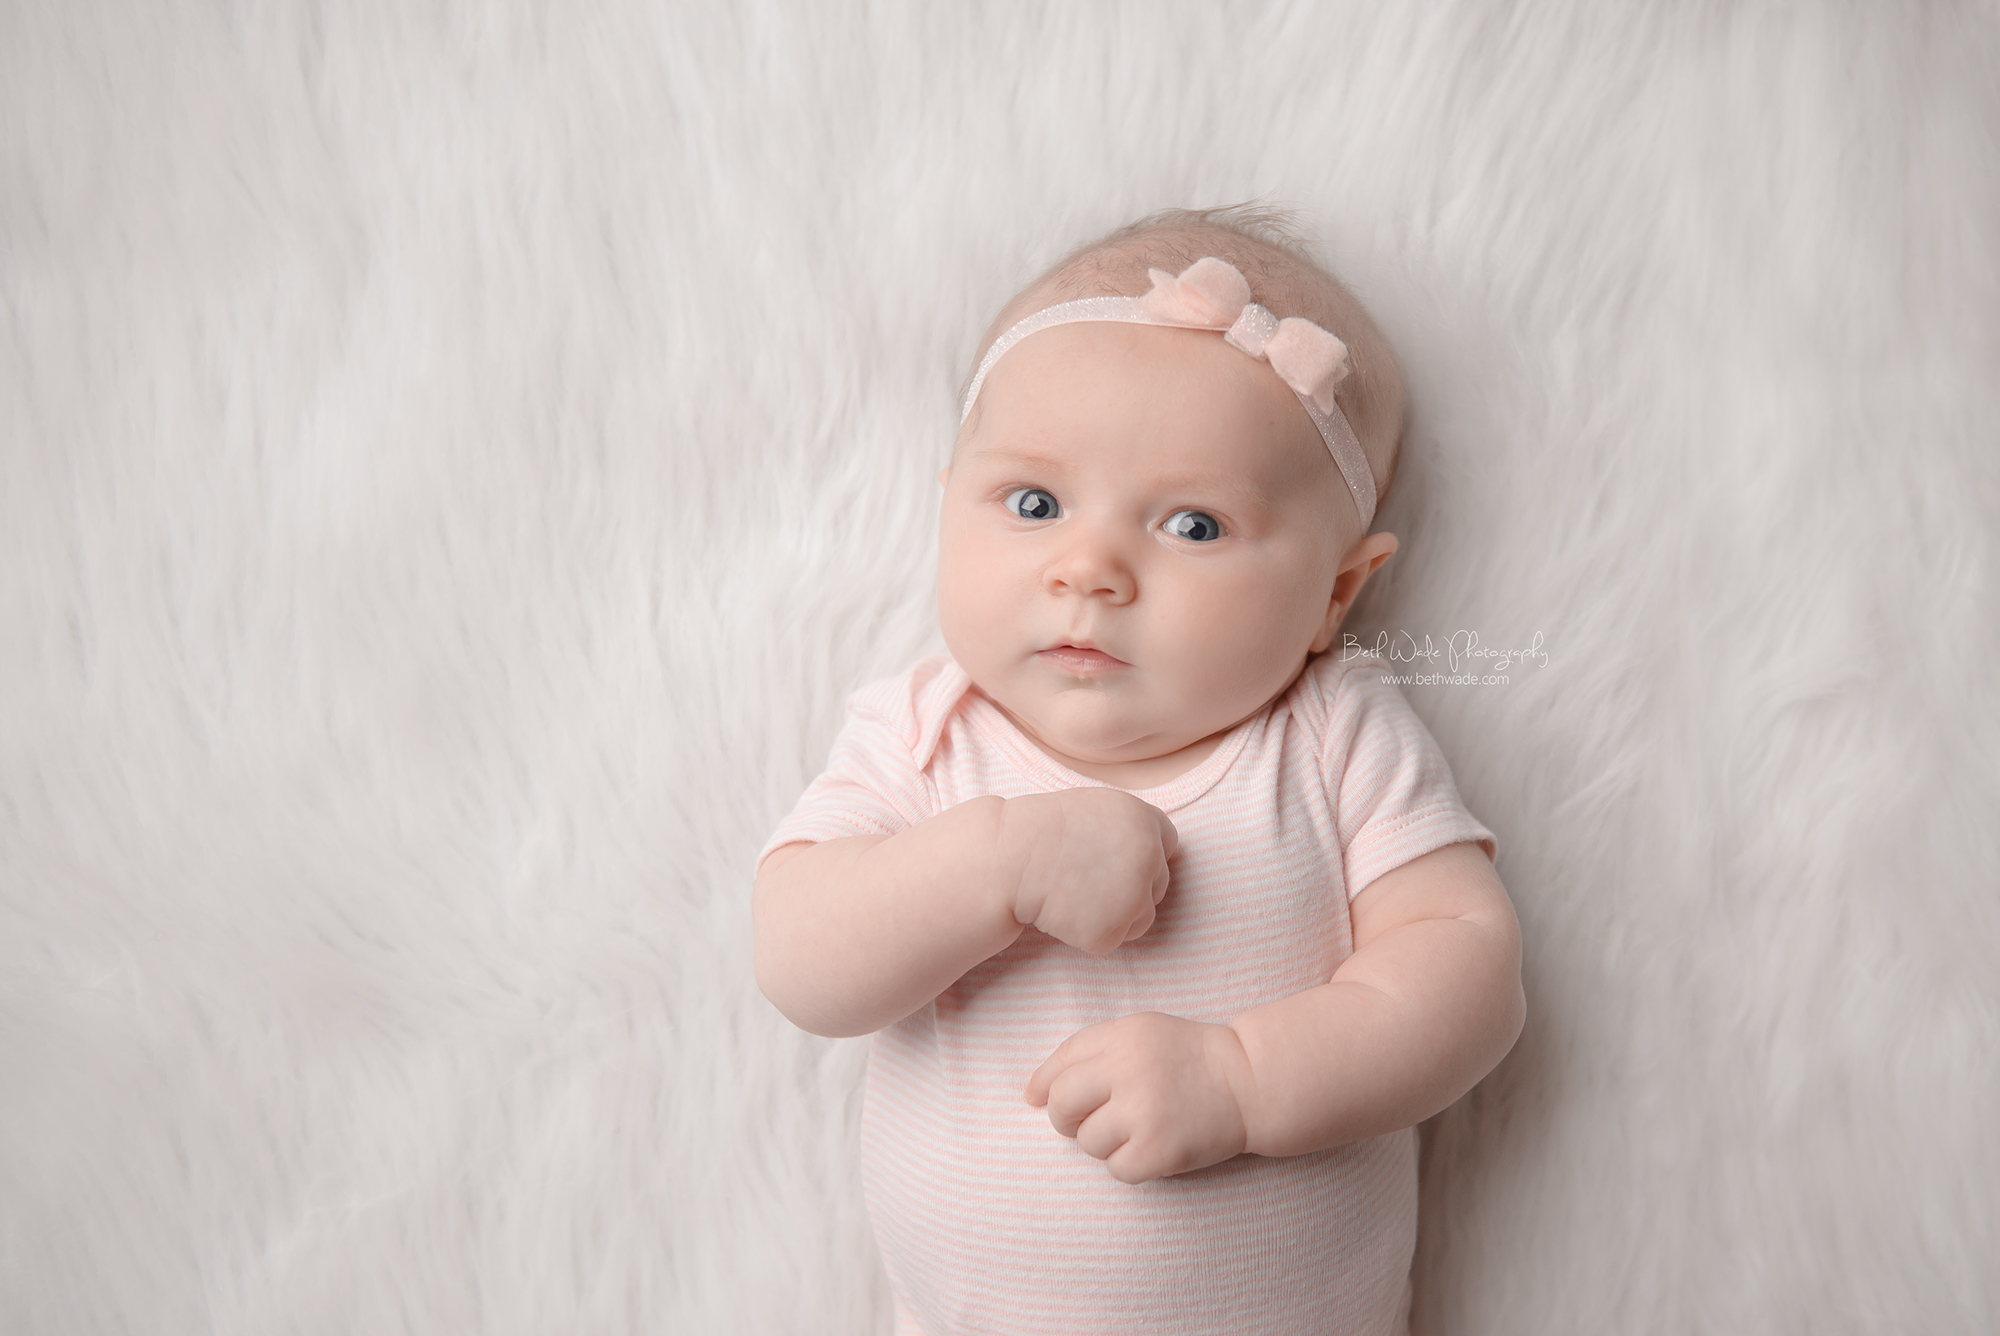 sweet alice jane ~ our girl is 2 months old  {lake wylie baby photographer}